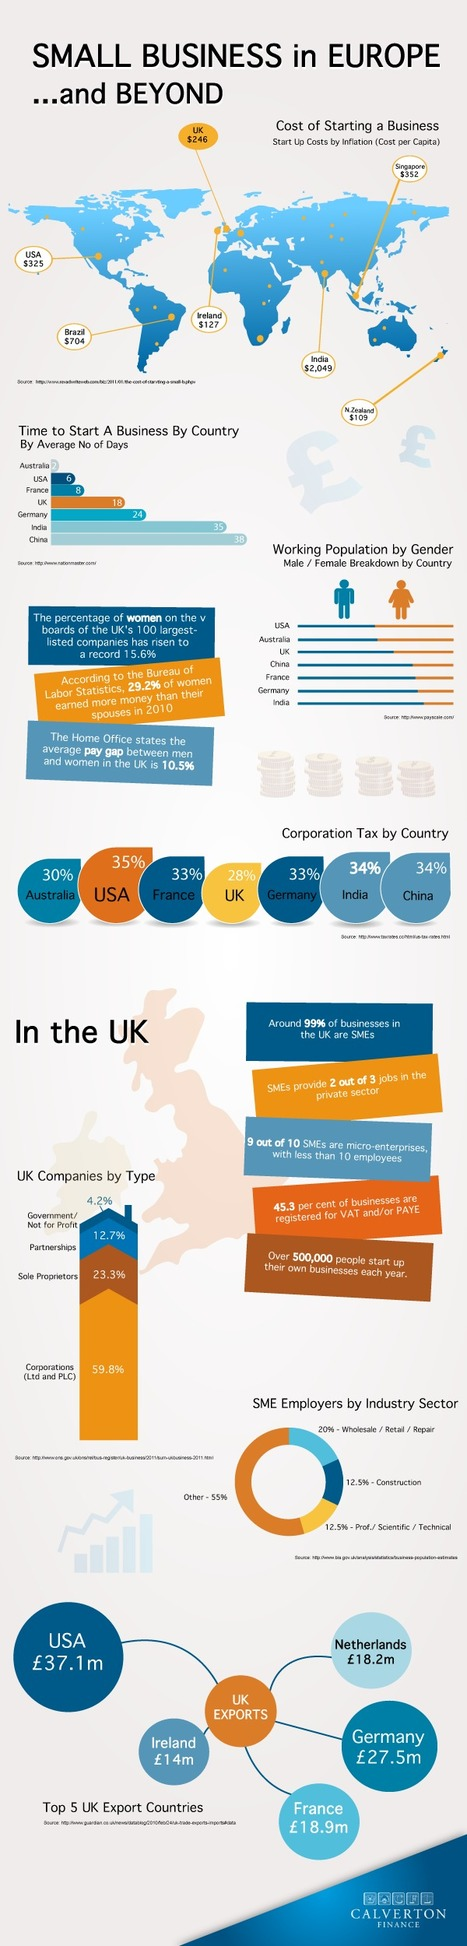 Small Business Stats - UK, Europe And Beyond | digital marketing strategy | Scoop.it